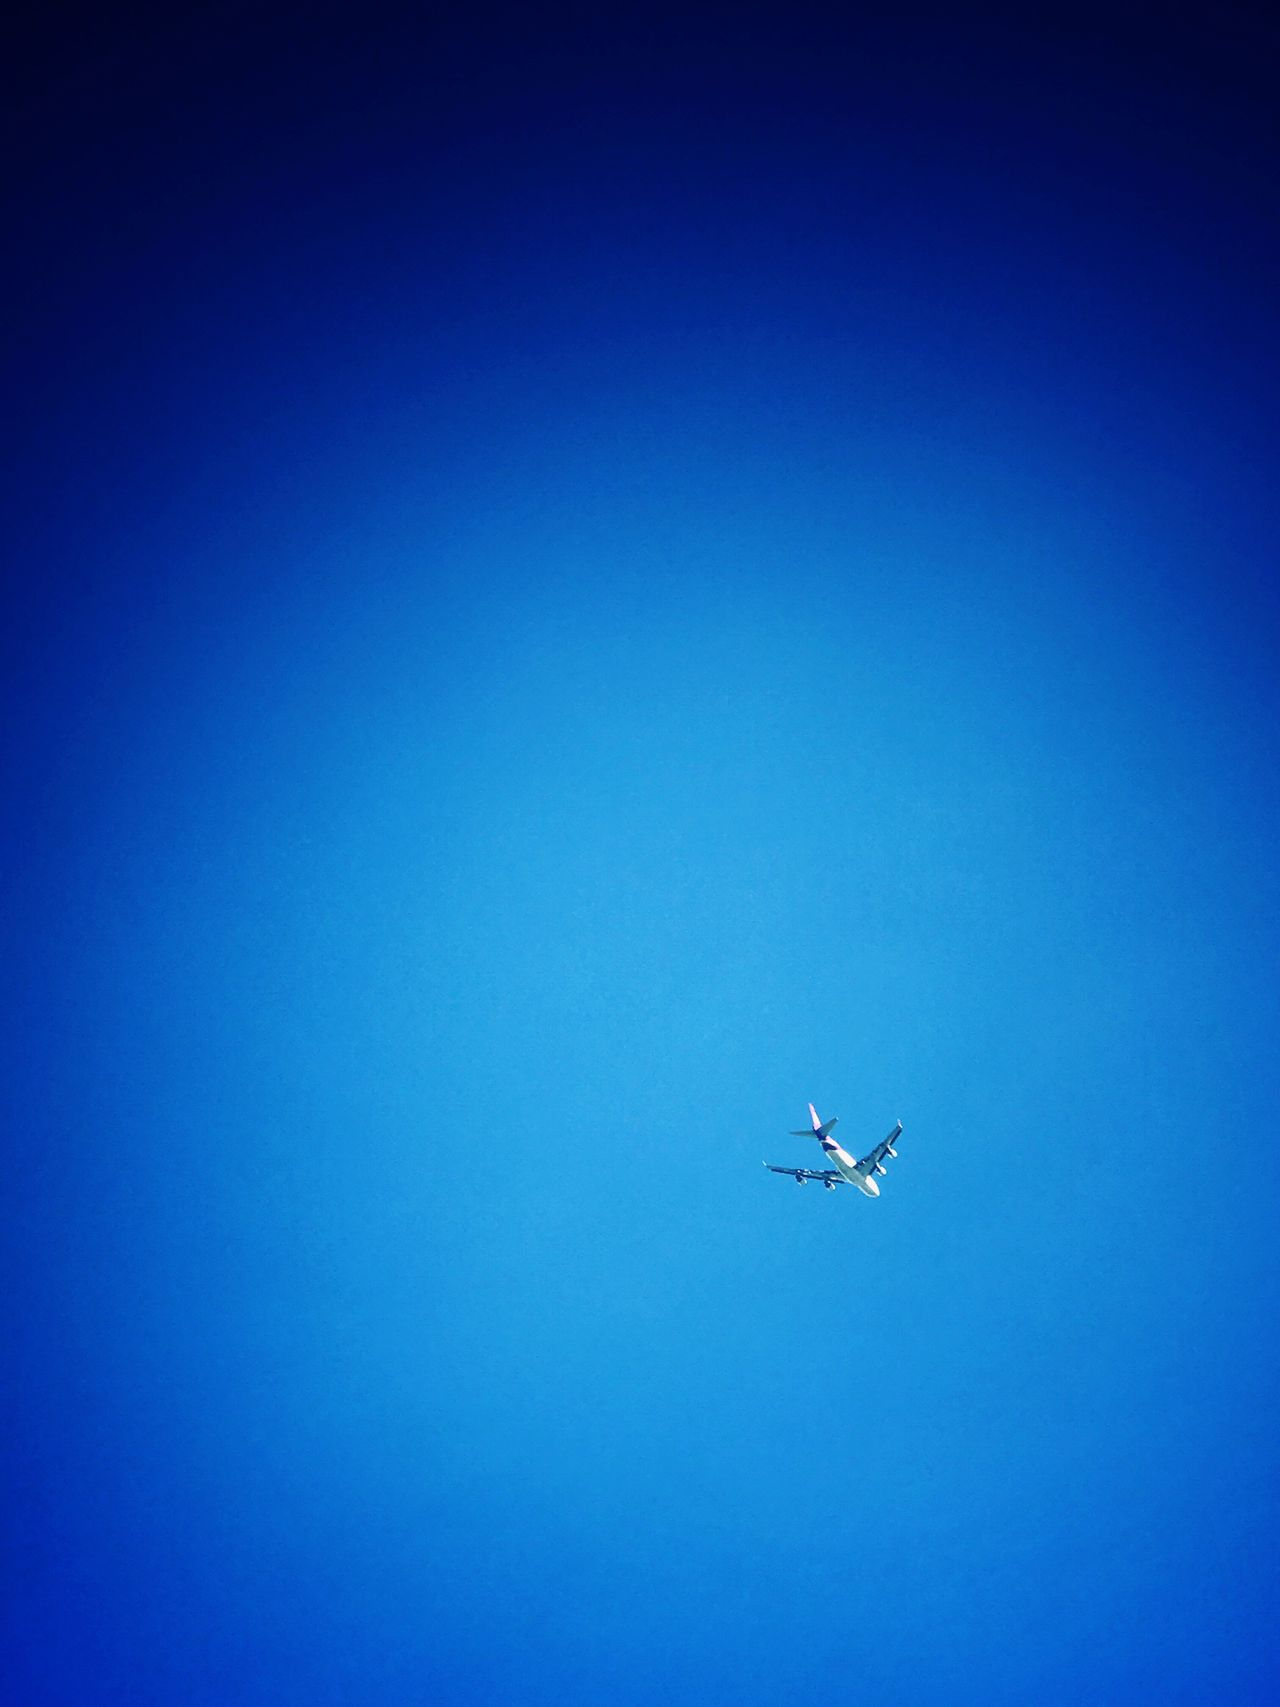 Flying High fly to somewhere Flying Blue Clear Sky Airplane Transportation Aircraft Mid-air Airways Flight Journey No People Nature Air Vehicle Day Outdoors Beauty In Nature Animal Themes Sky Airplane Wing